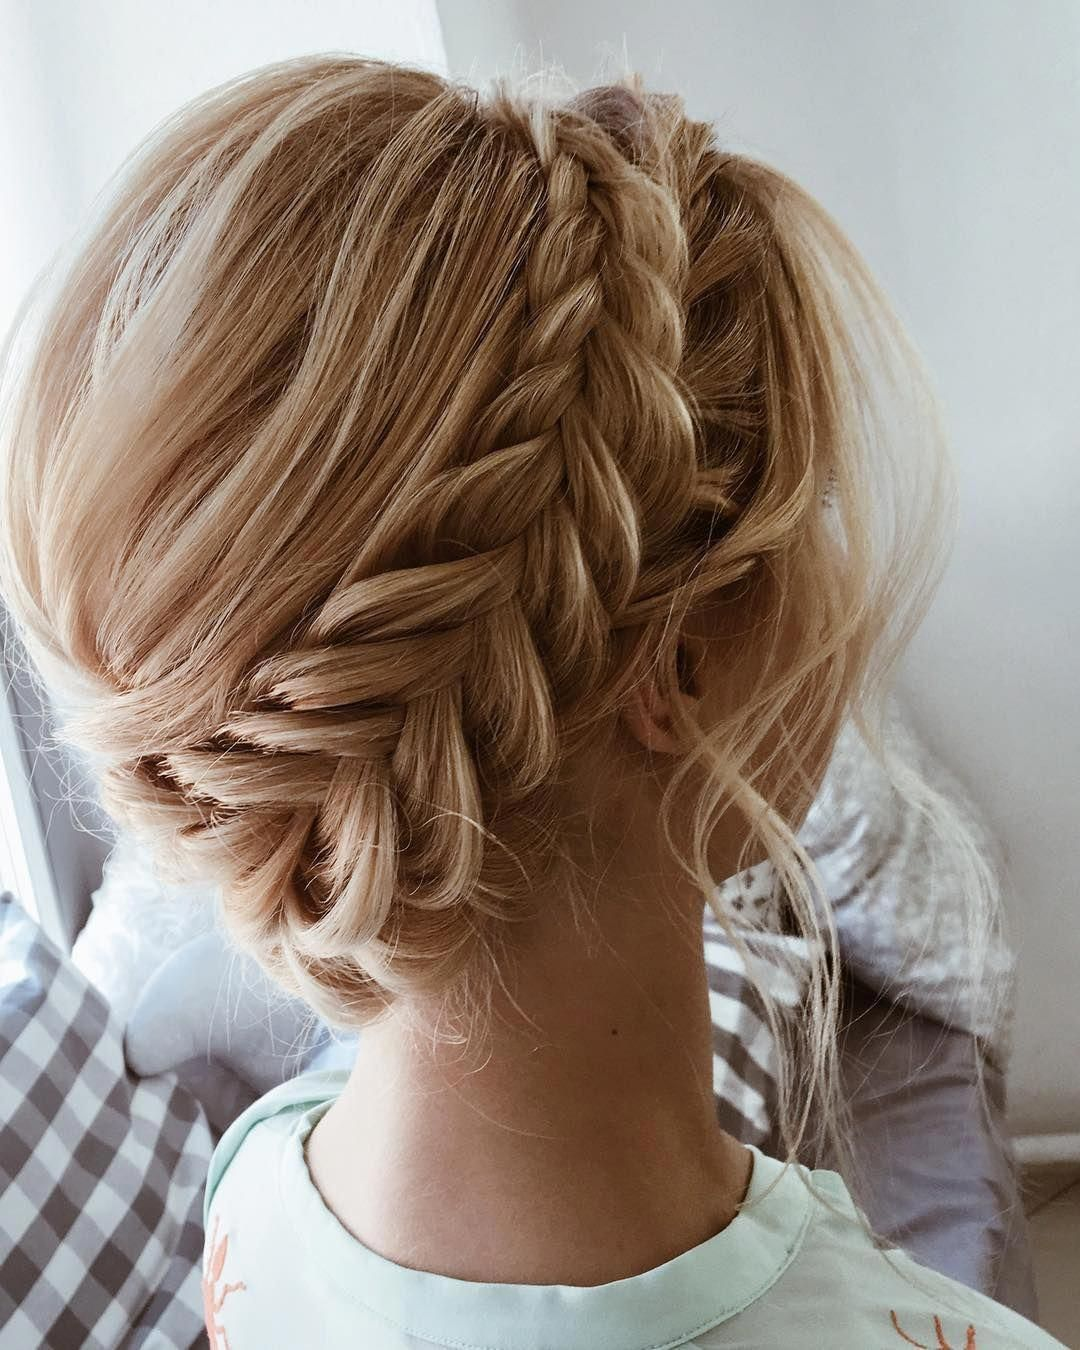 22 Beautiful Prom Hairstyles That'll Steal the Night ...